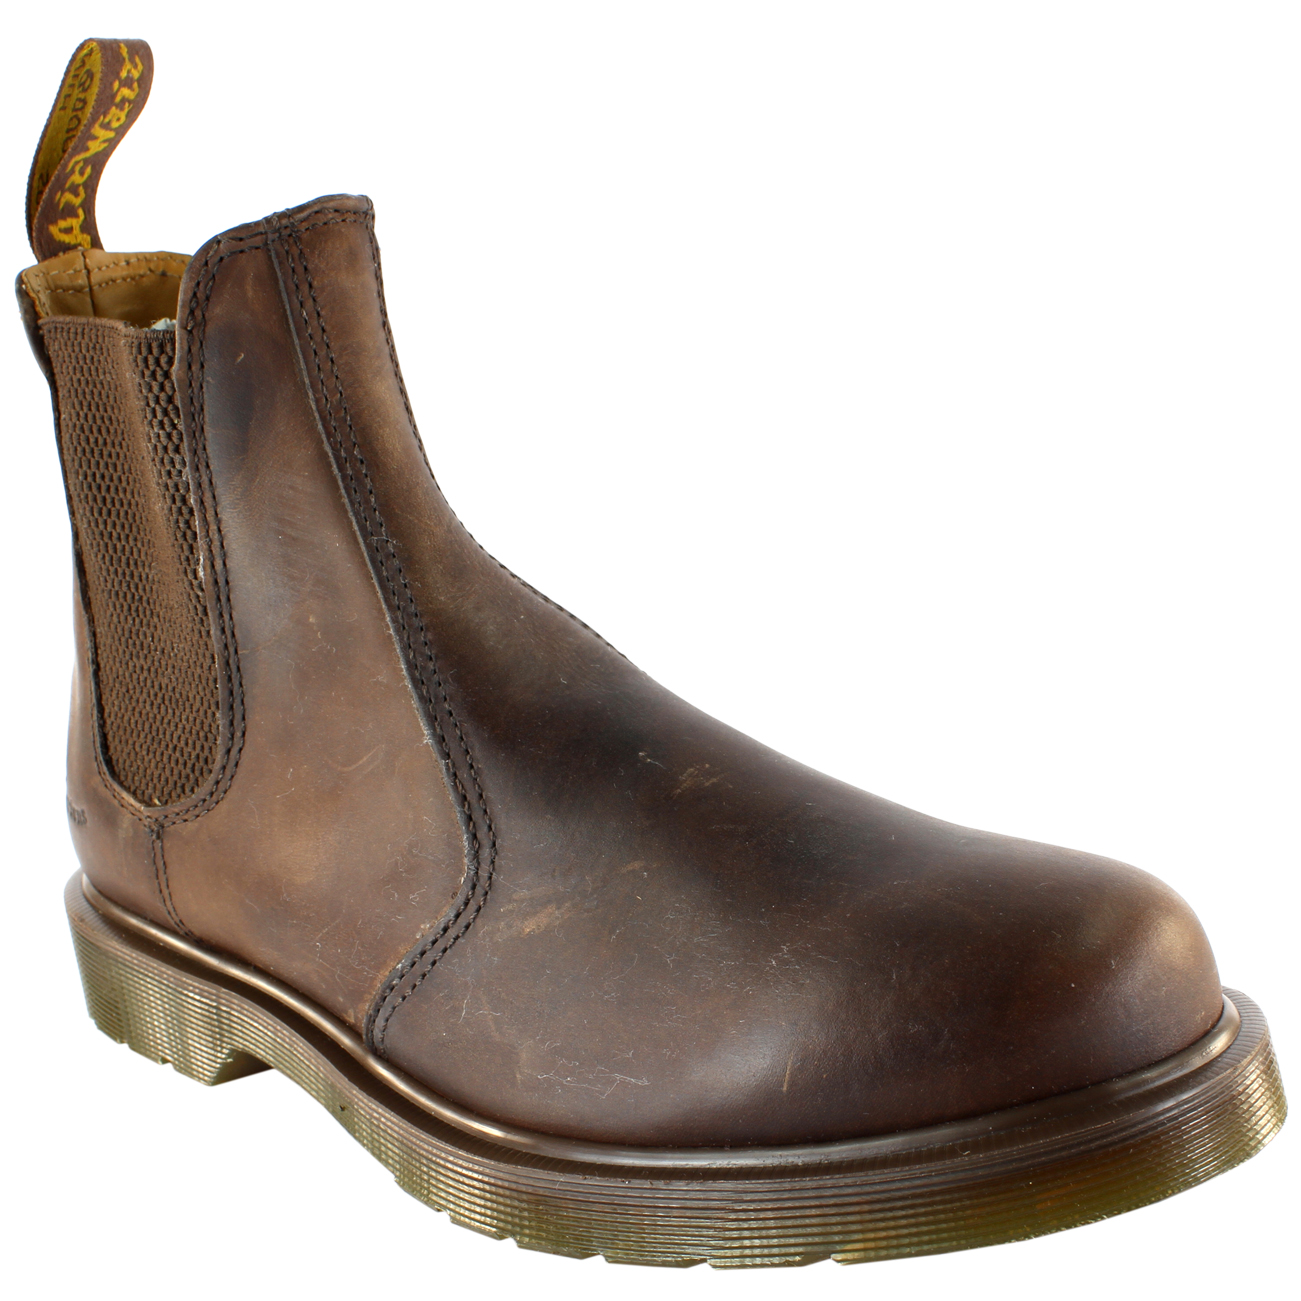 Beatwear Original Chelsea Boots. The Beatwear Original Chelsea Boot Collection. This style has a high cuban heel and is one of the first styles that Beatwear made.